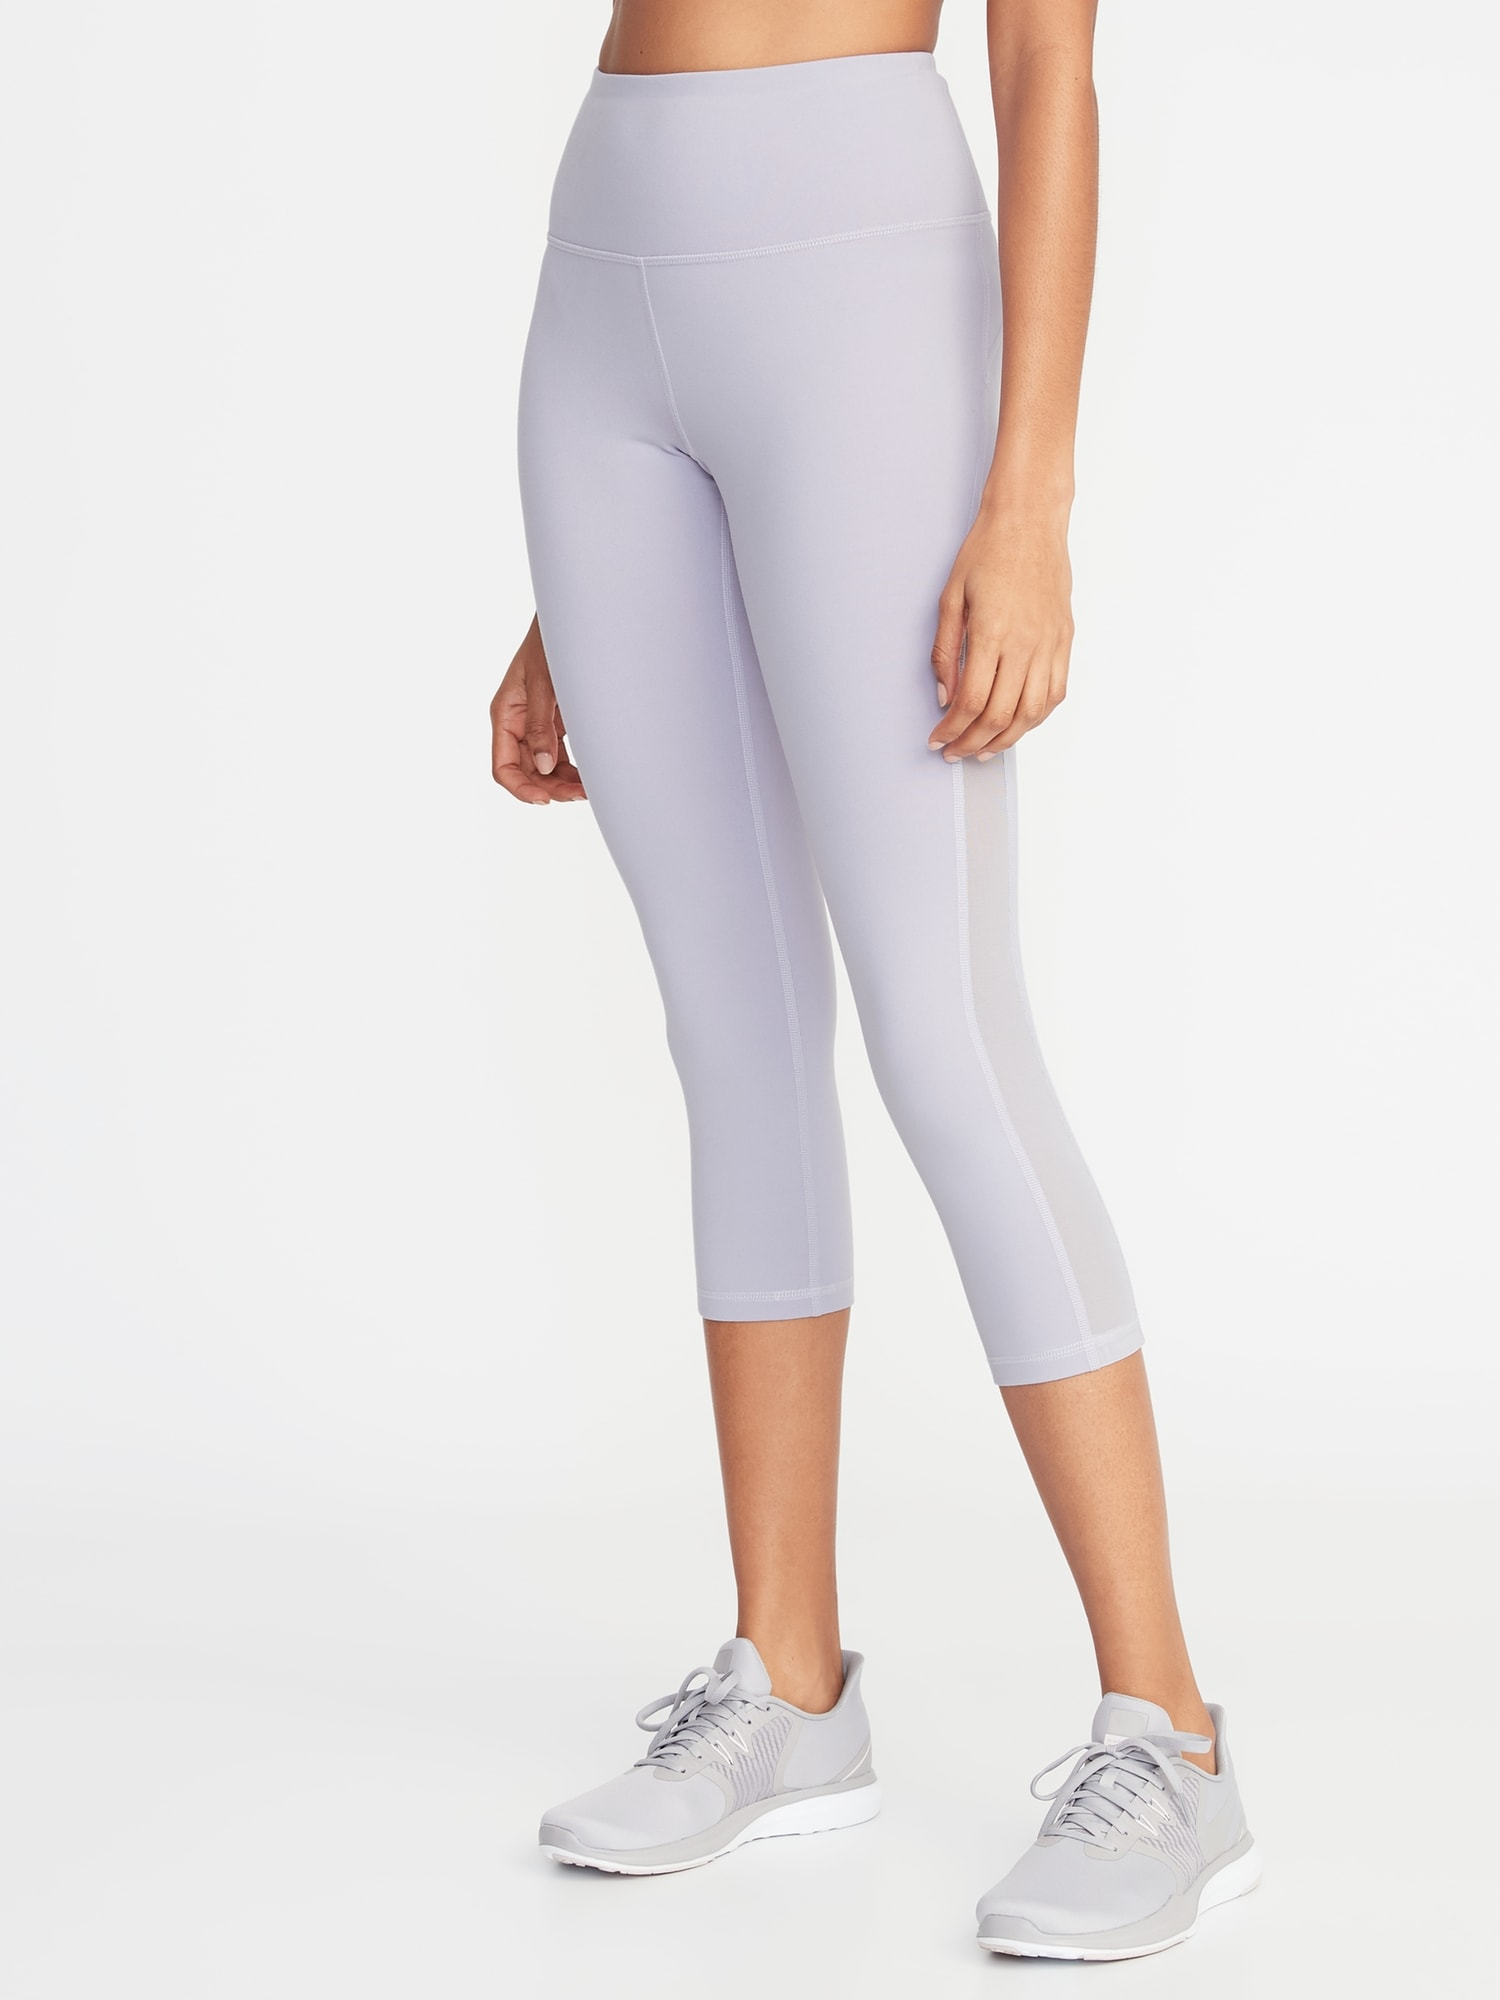 2909b6284c High-Rise Elevate Side-Mesh Compression Crops for Women | Old Navy